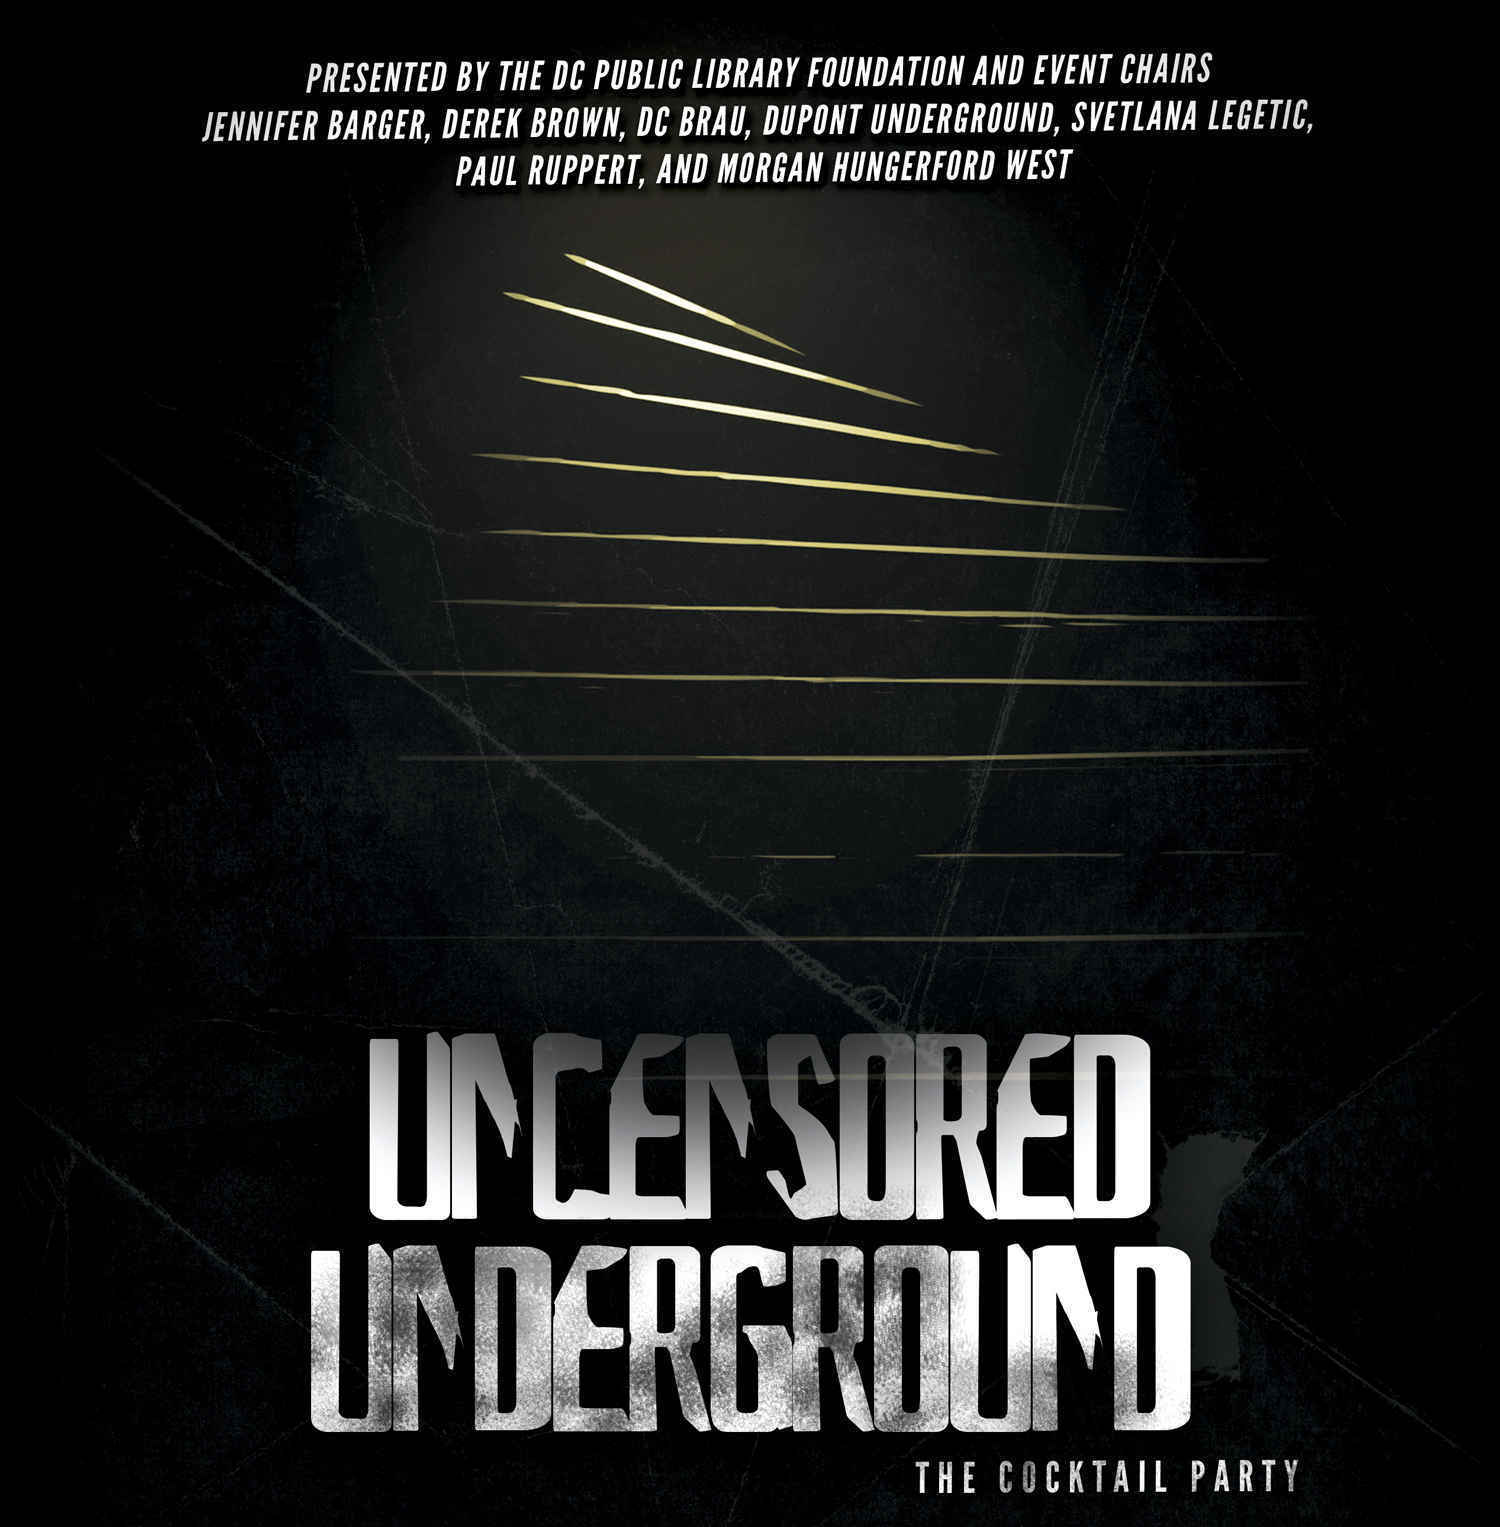 UNCENSORED Underground The Cocktail Party image